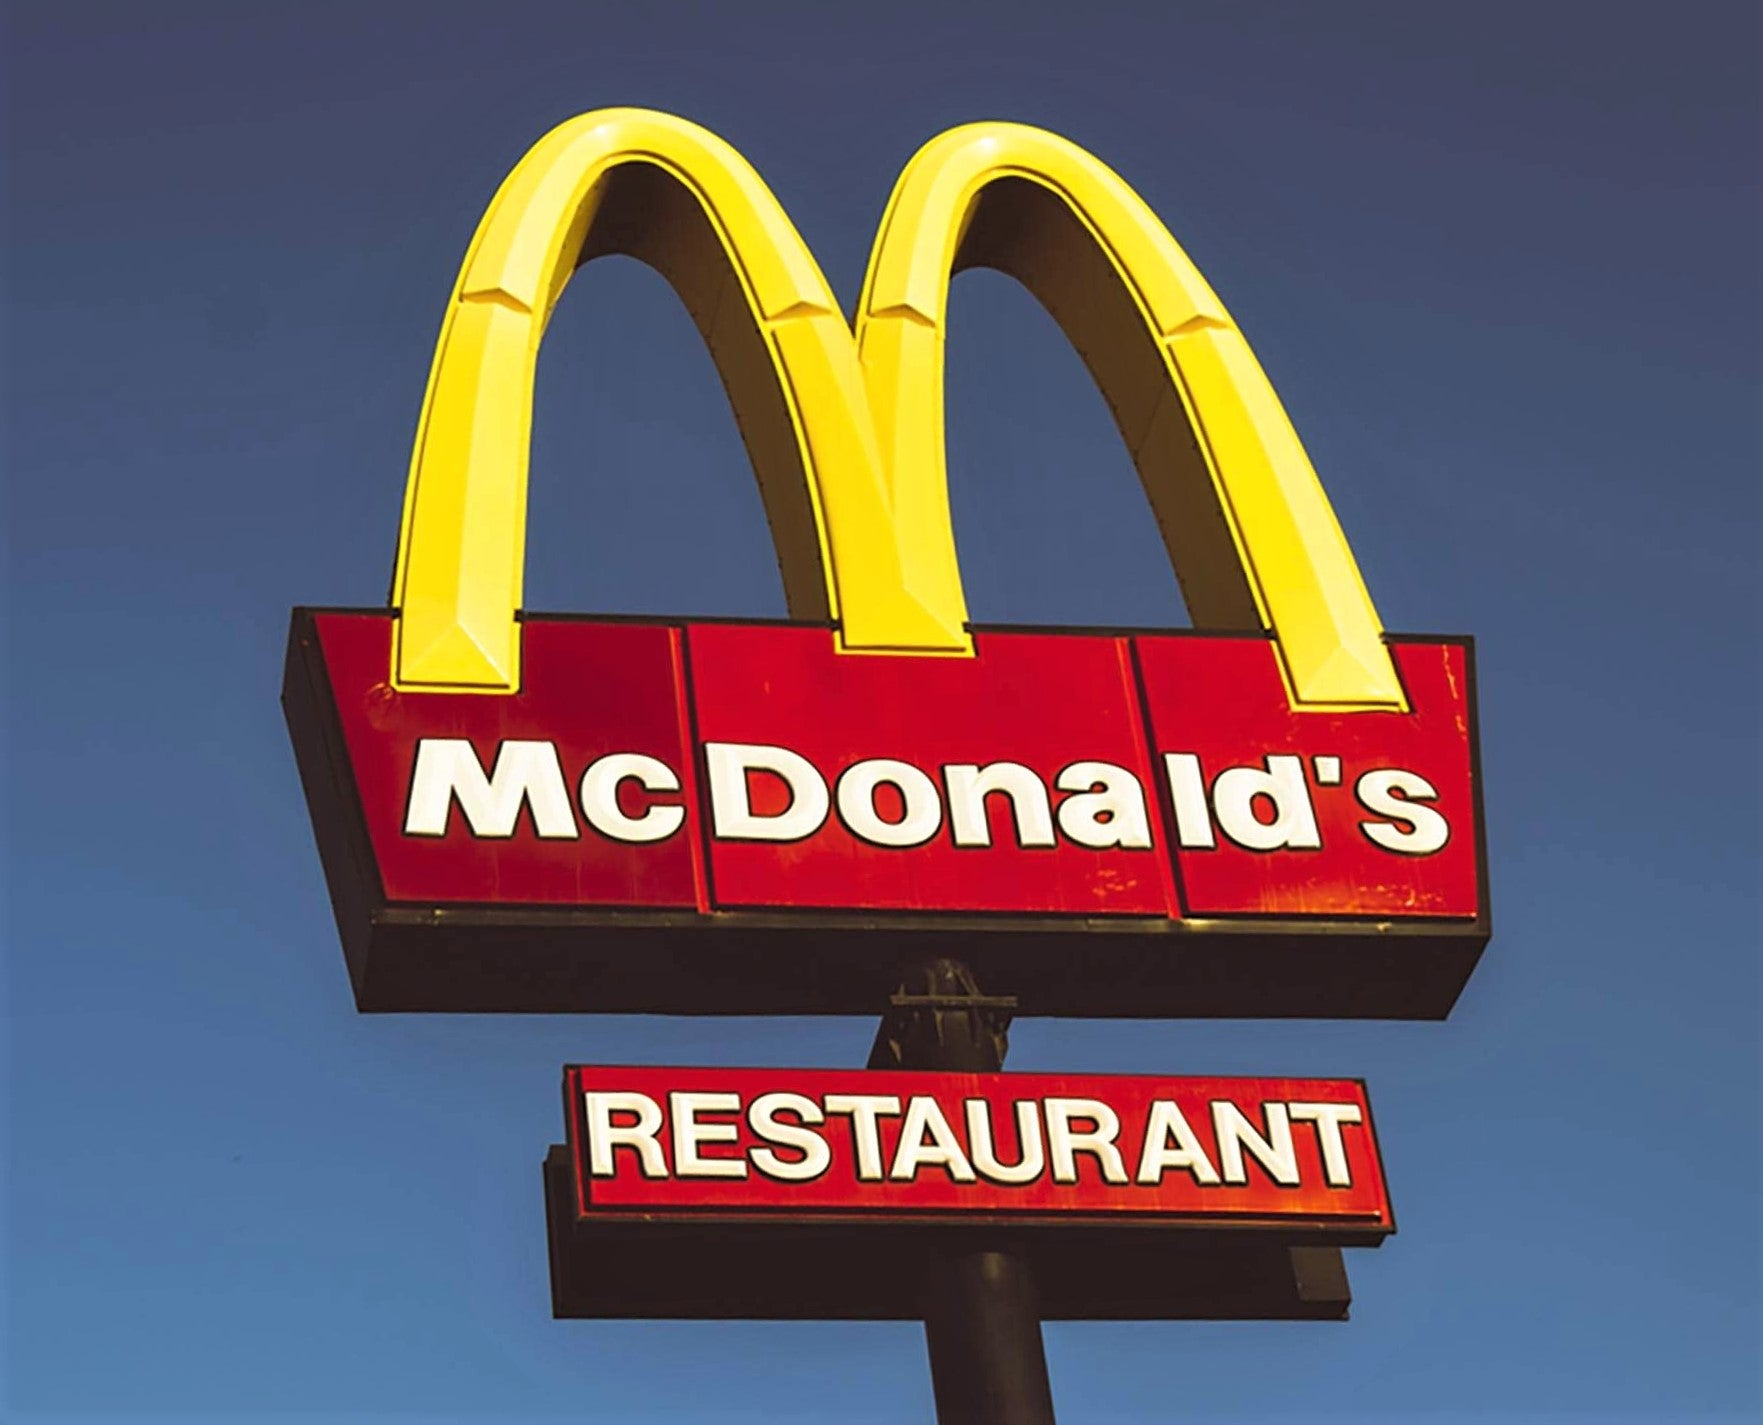 mcdonald's golden arches shining in the bright blue sky